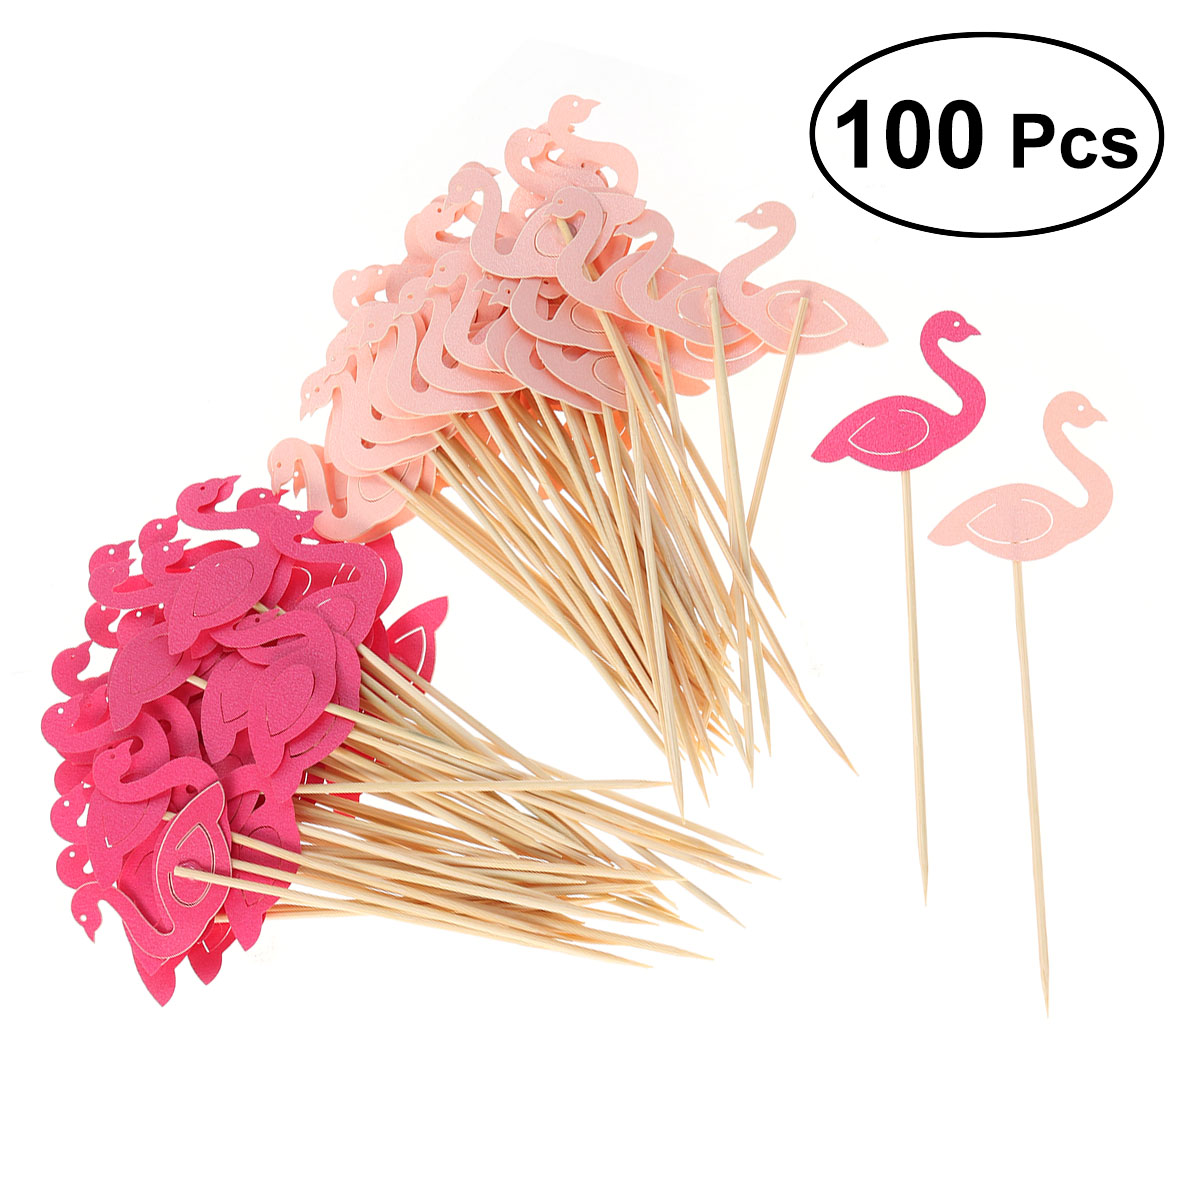 100 Pcs Stylish Flamingo Cake Toppers Attractive Chic Dessert Topper Cake Picks Cupcake Decoration for Dessert Decoration cell free dna in cancer